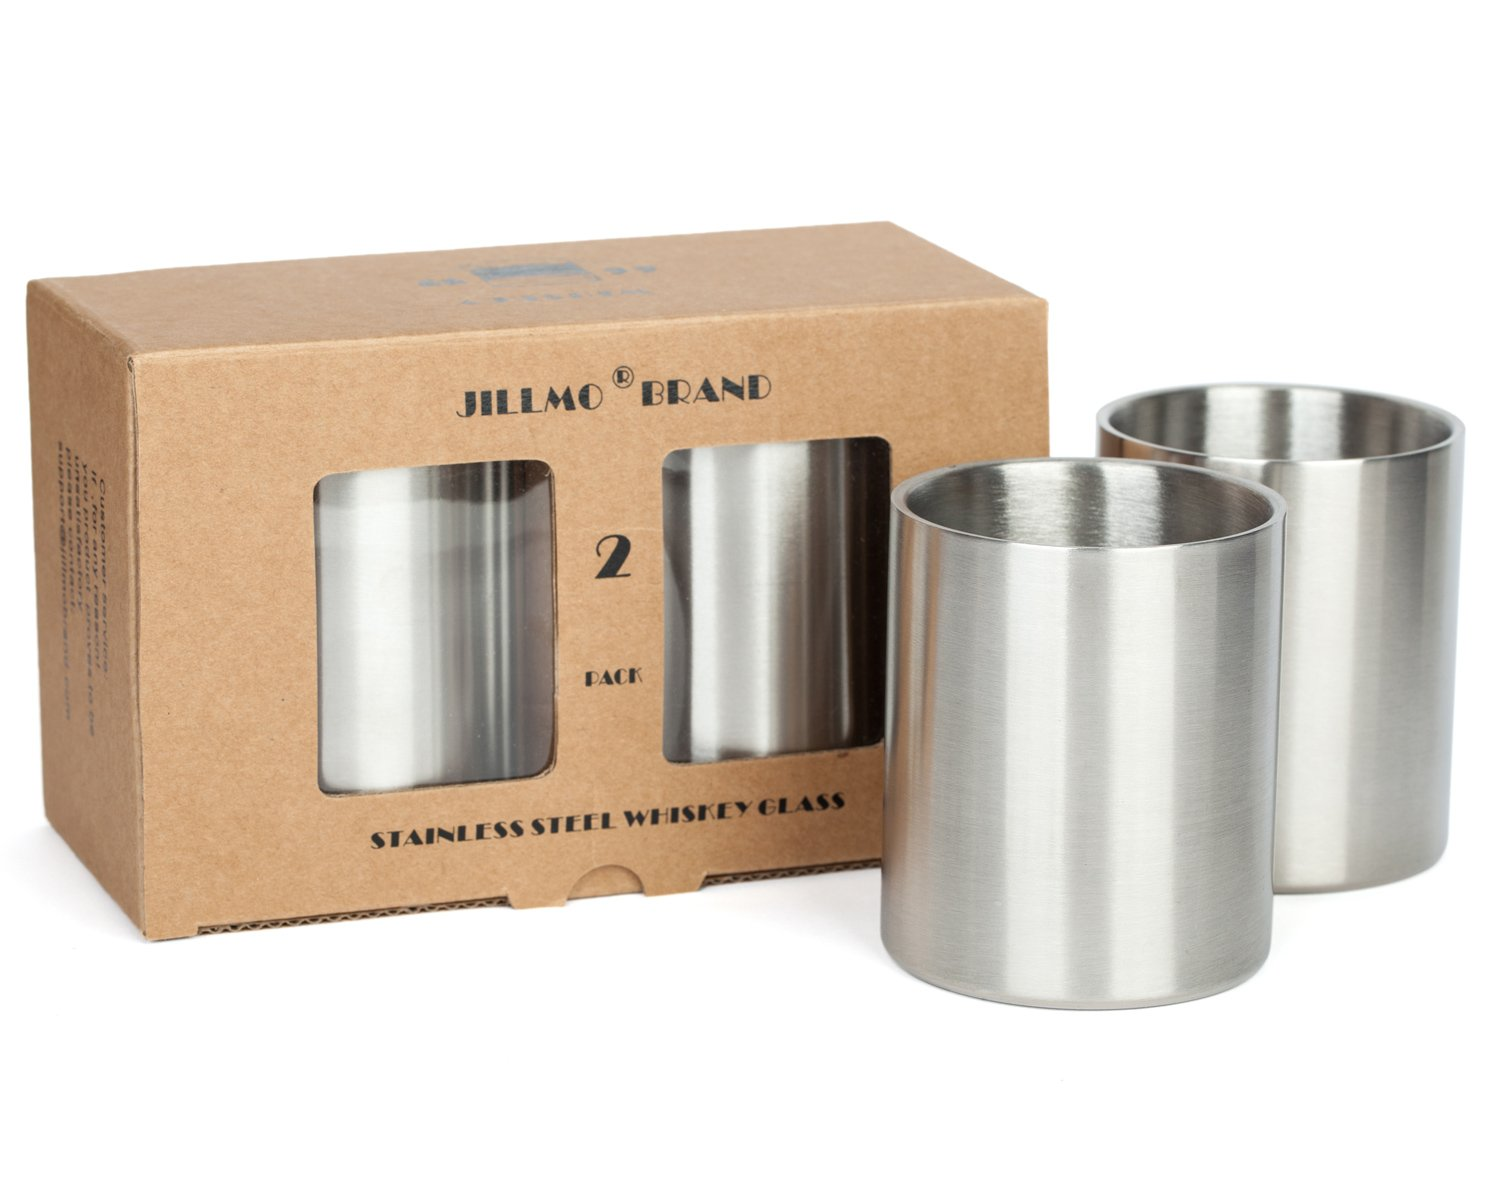 Stainless Steel Whiskey Glasses- Set of 2 -10oz Double Walled Unbreakable Lowball Insulated Bourbon Glasses